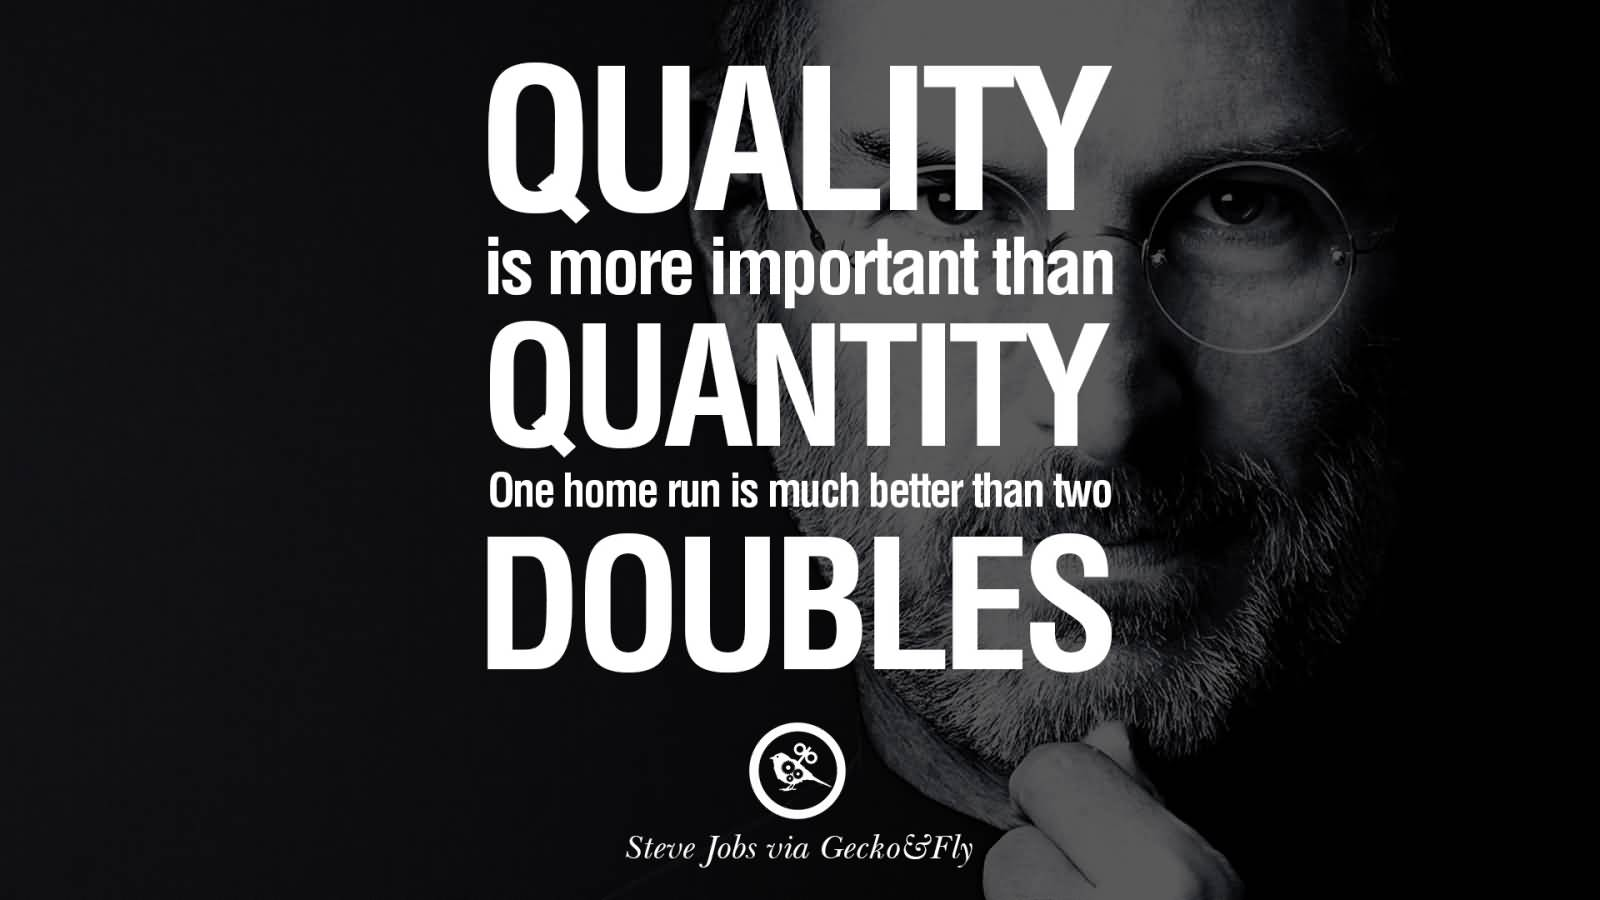 Quality is more important than quantity one home run is much better than two doubles.-Steve Jobs